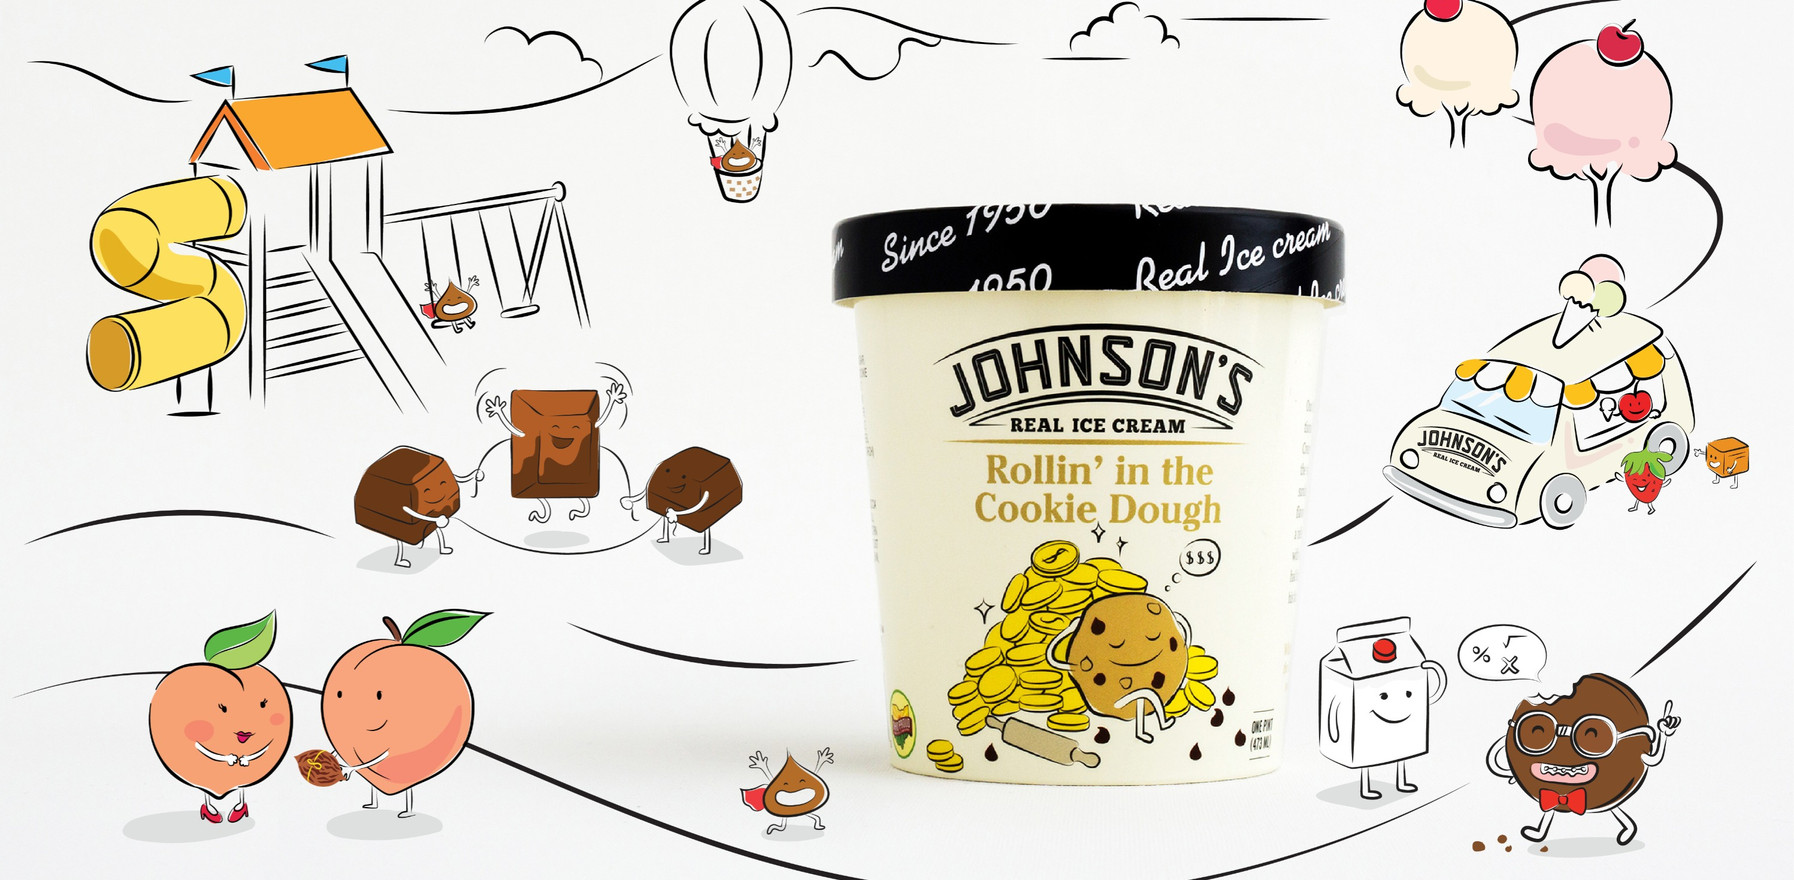 Johnson's Ice Cream (Click to View)